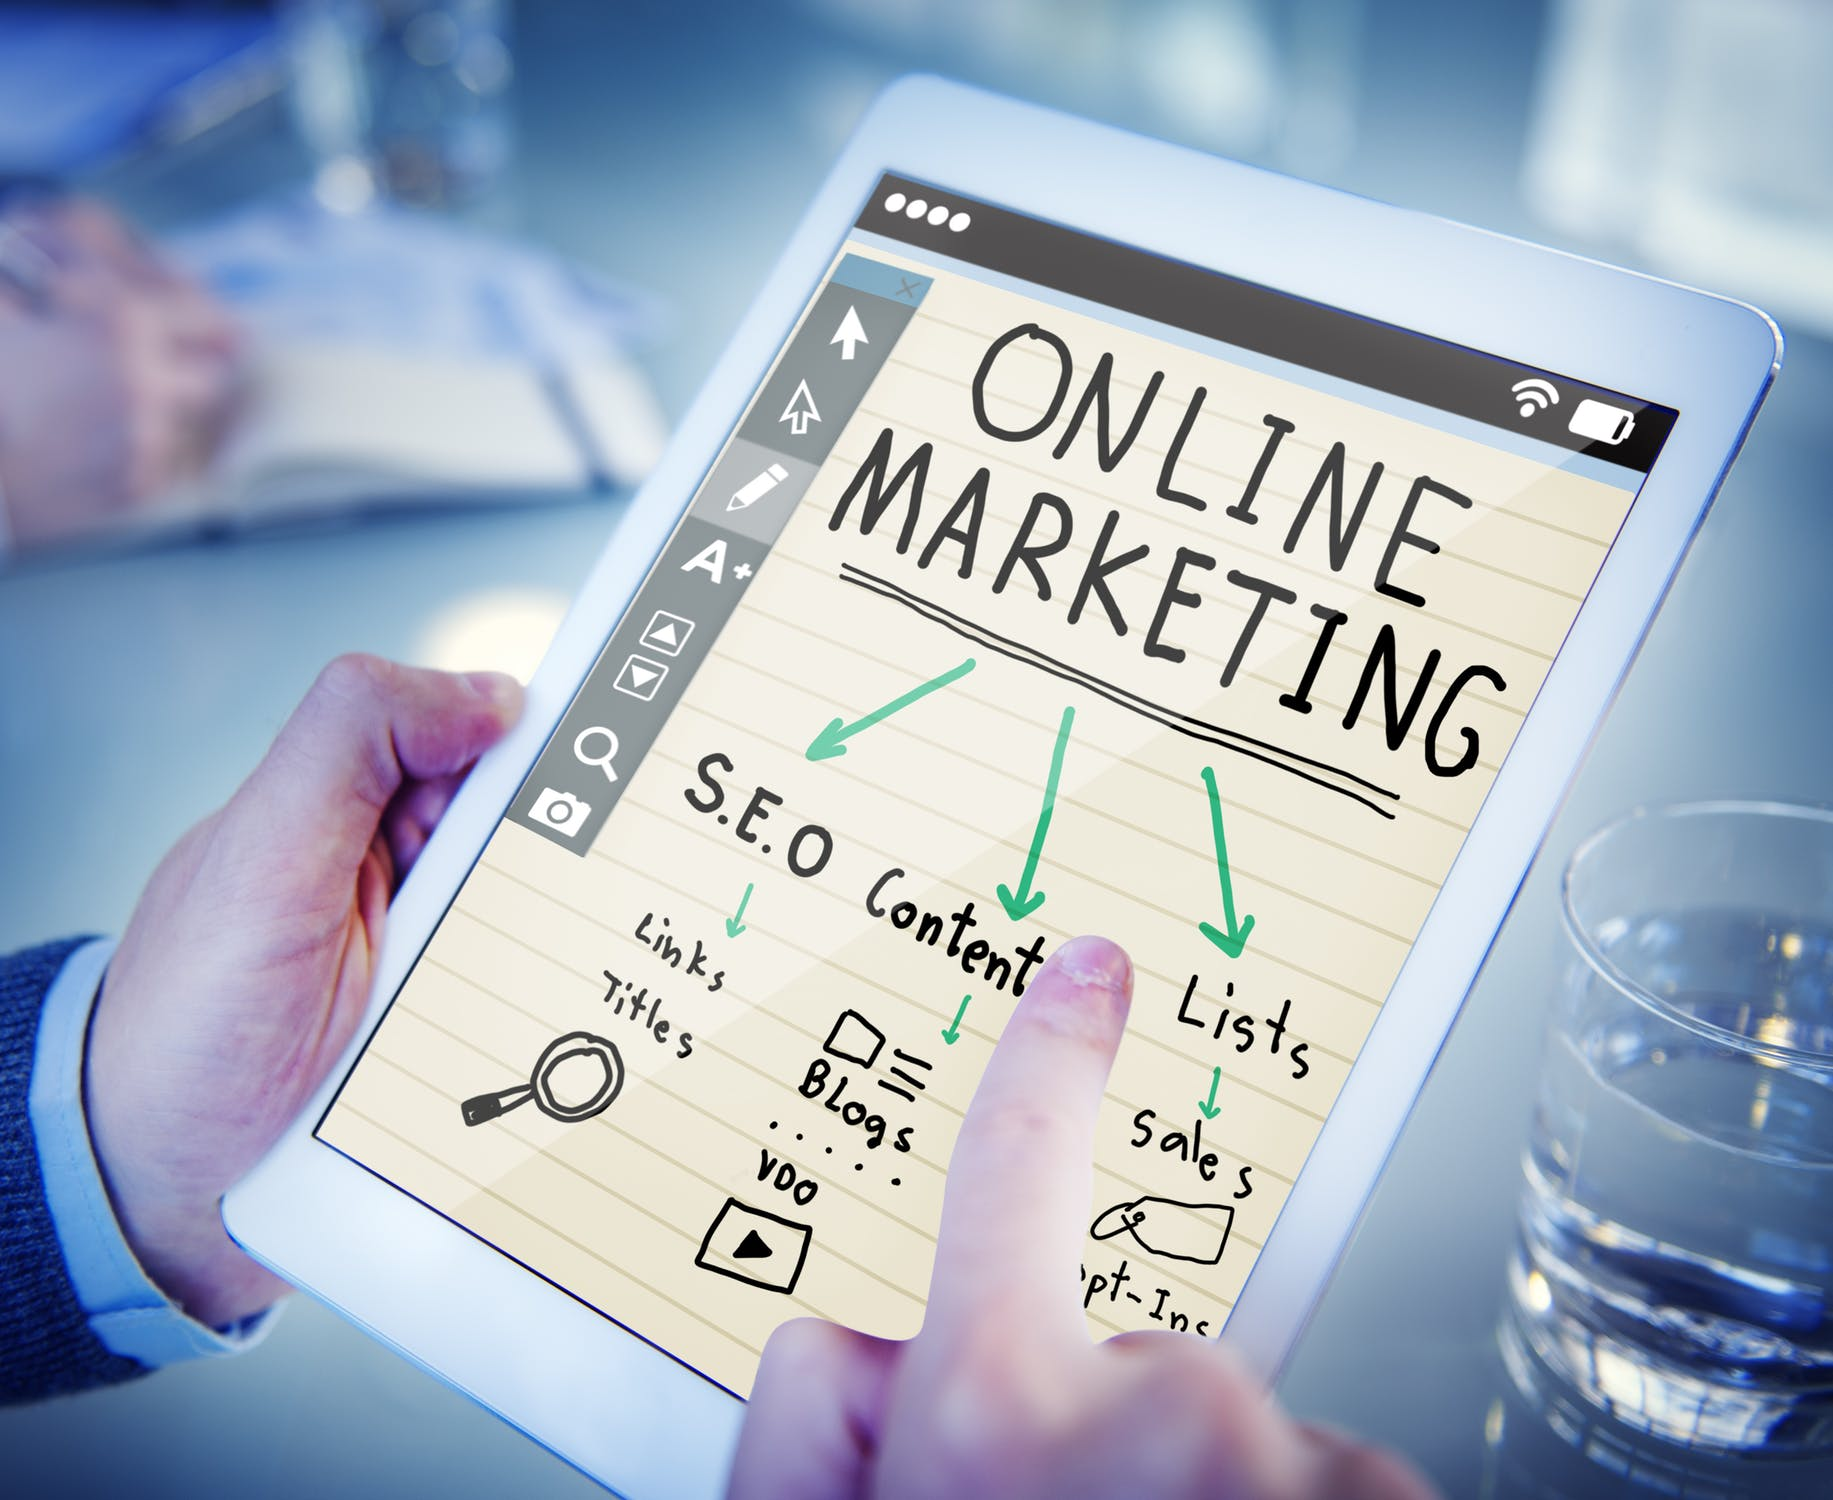 7 Best Ways to Improve E-Commerce by Online Marketing